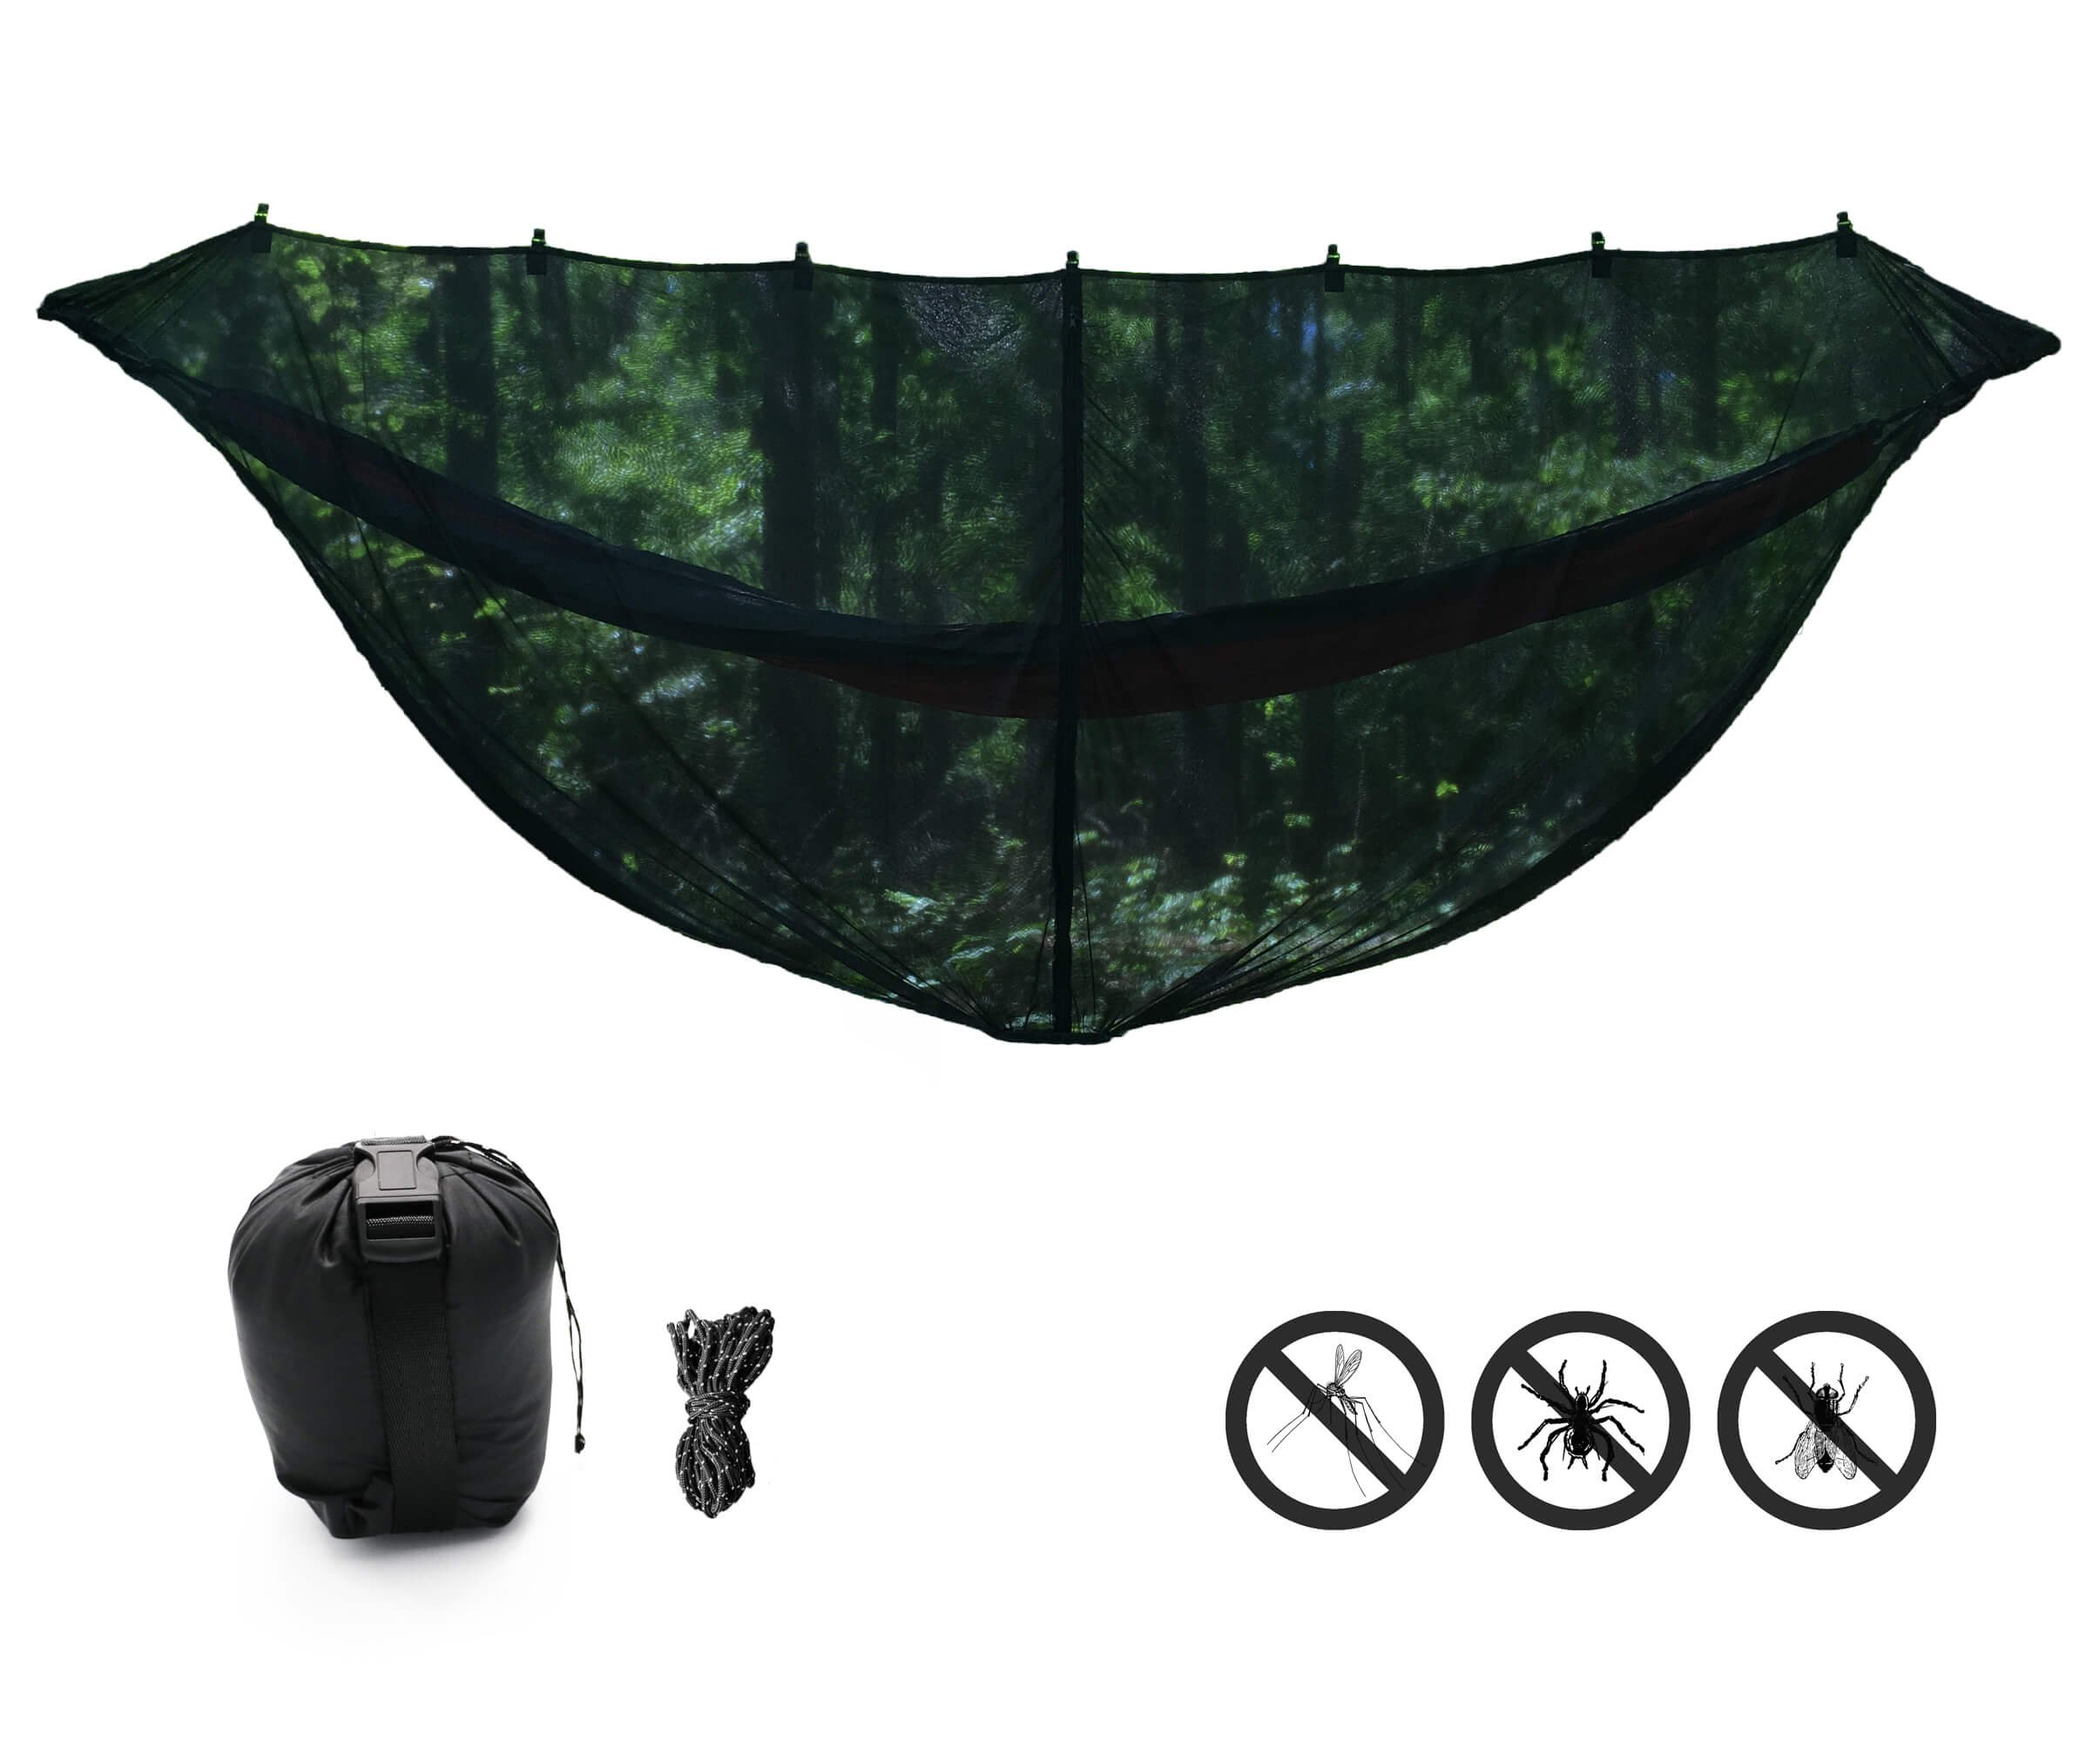 KING OUTFITTERS JUNGLER 11'6'' BUG NET. LARGEST Hammock Bug Net for Diagonal Lay. SECURITY from Bugs and Mosquitoes [Jungle Survival Gear]